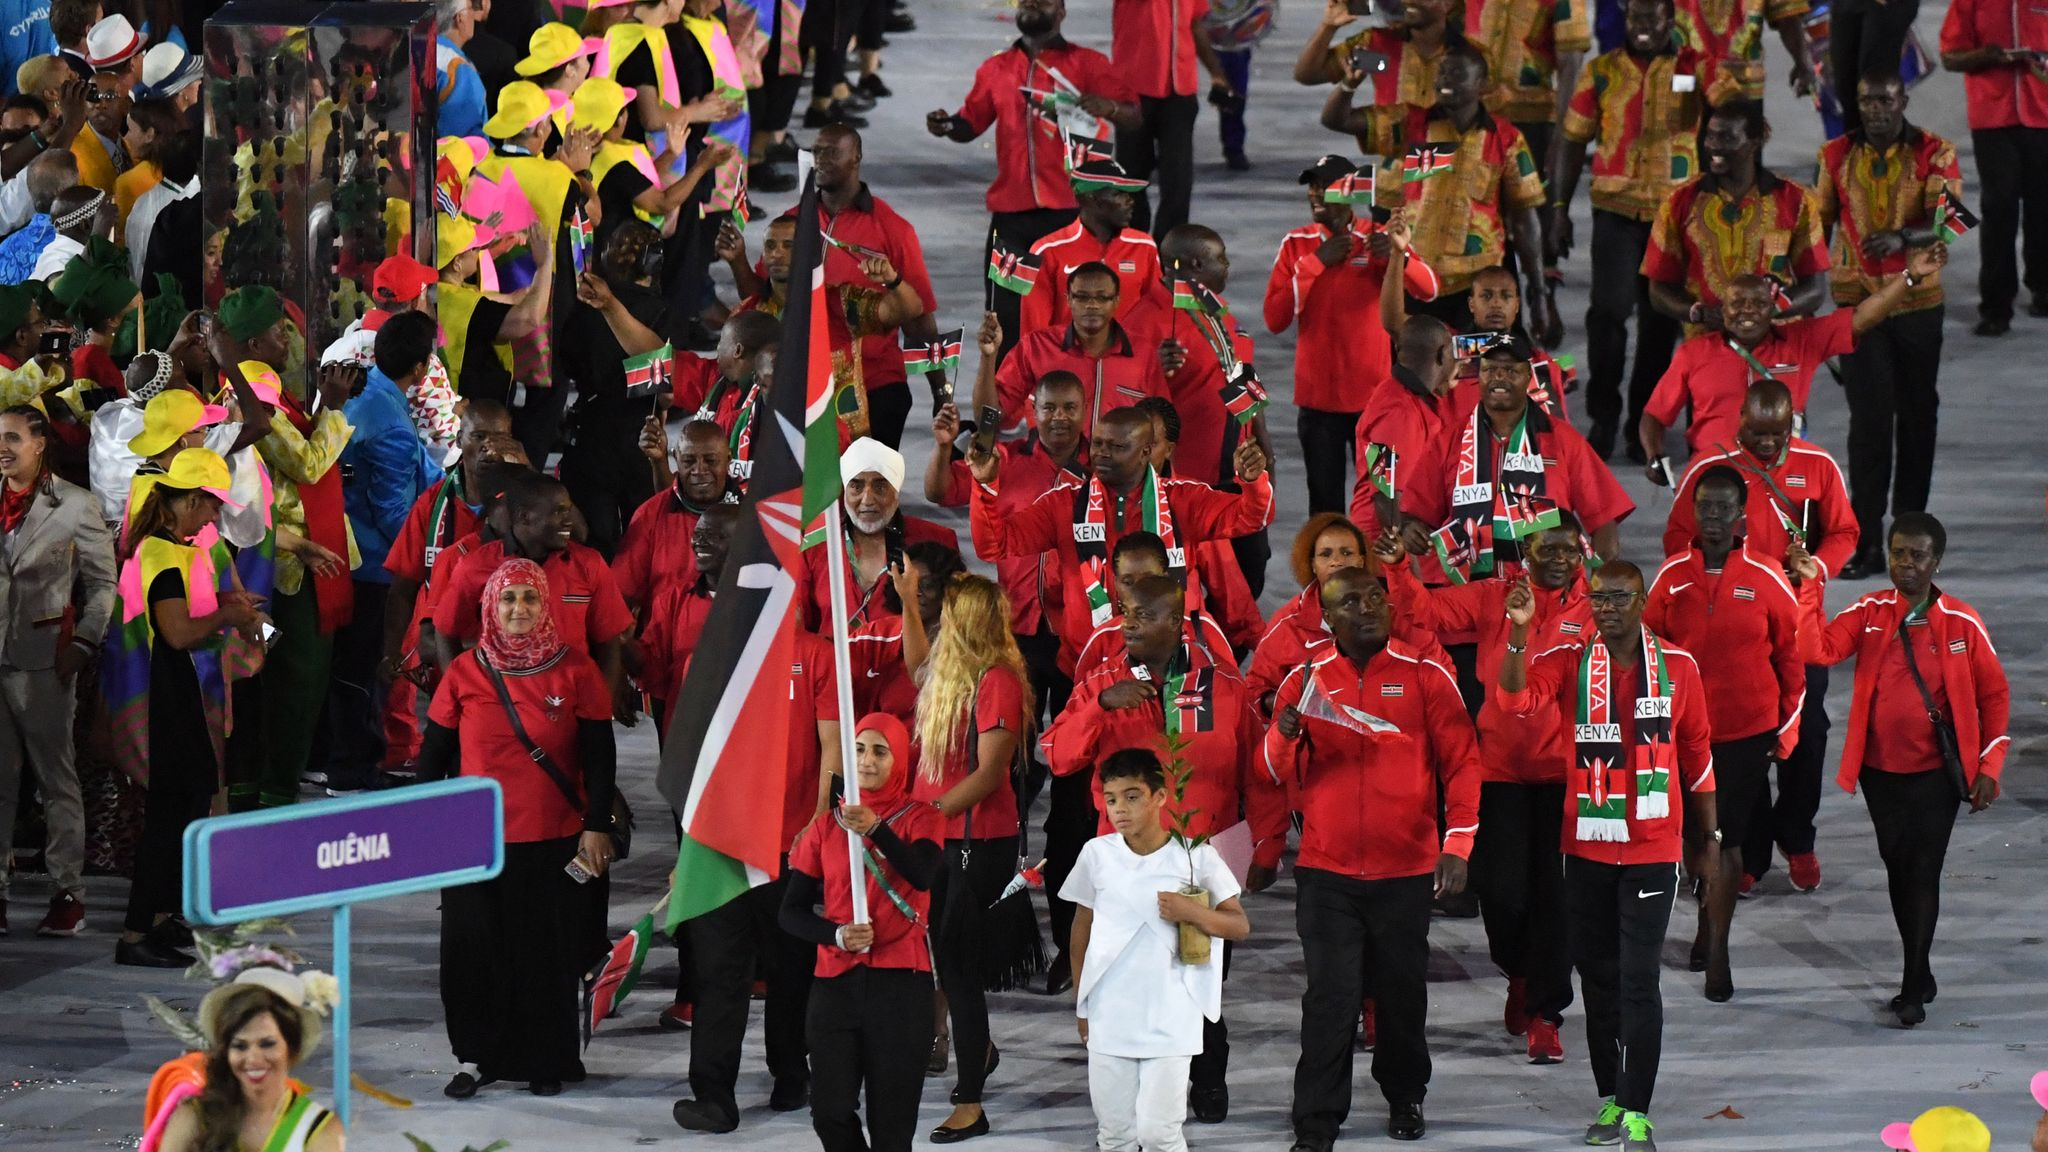 IOC calls for all delegations with female flag bearers at Tokyo Olympics opening ceremony